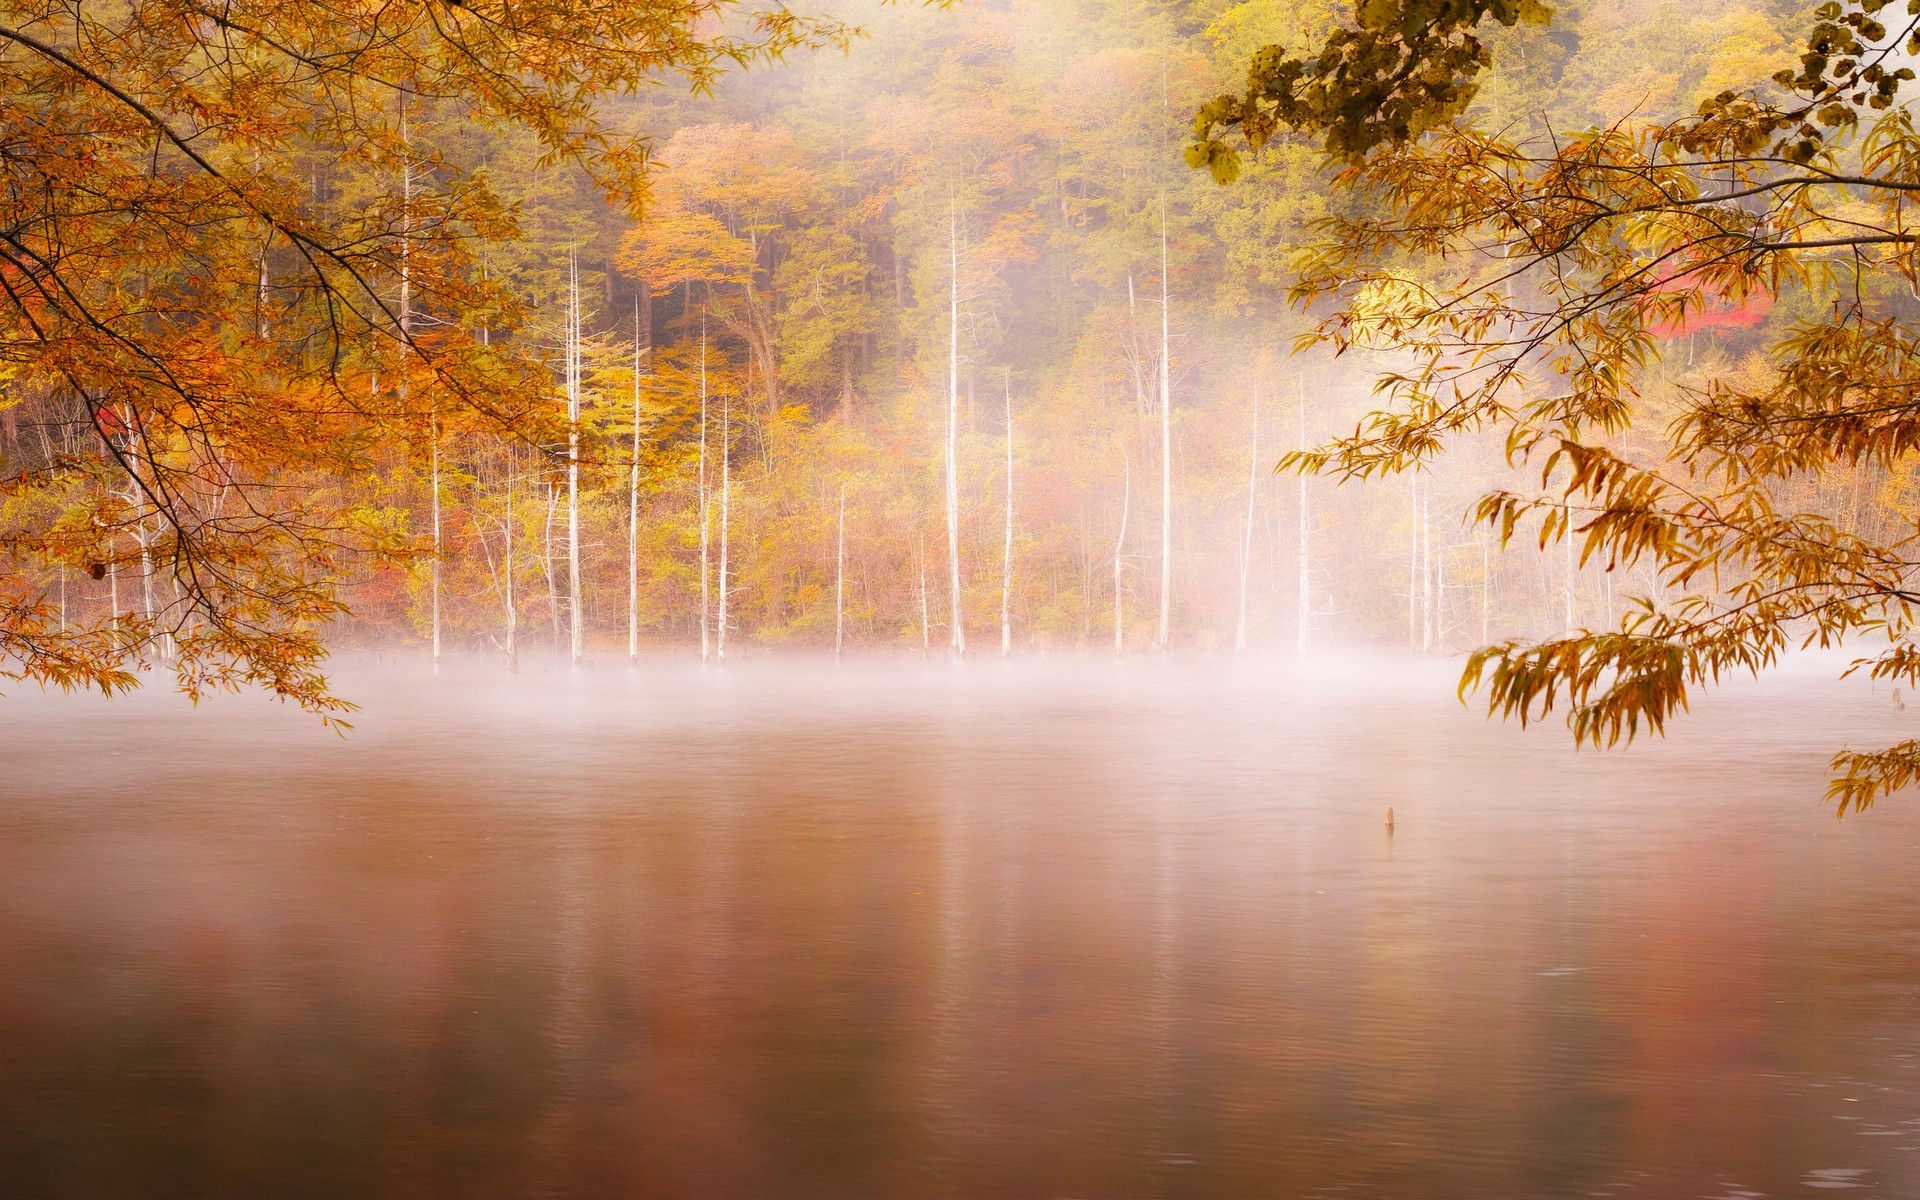 Autumn - lake